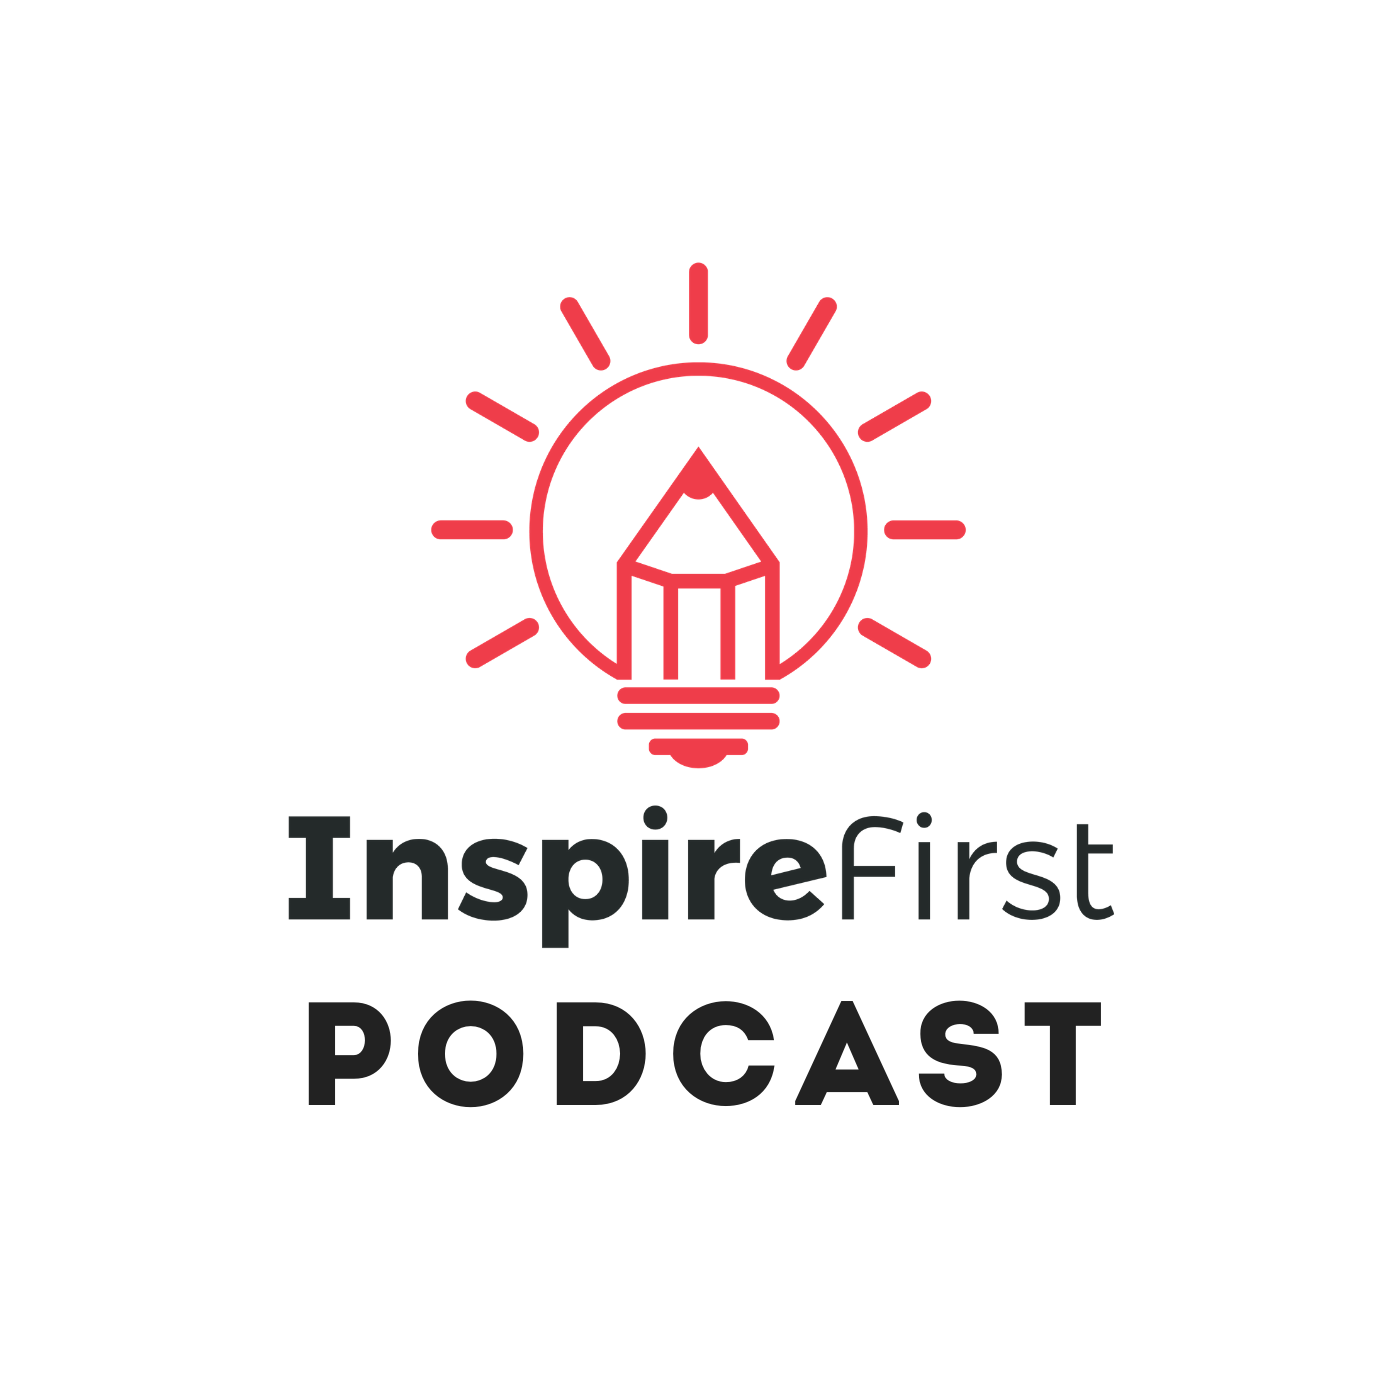 The InspireFirst Podcast